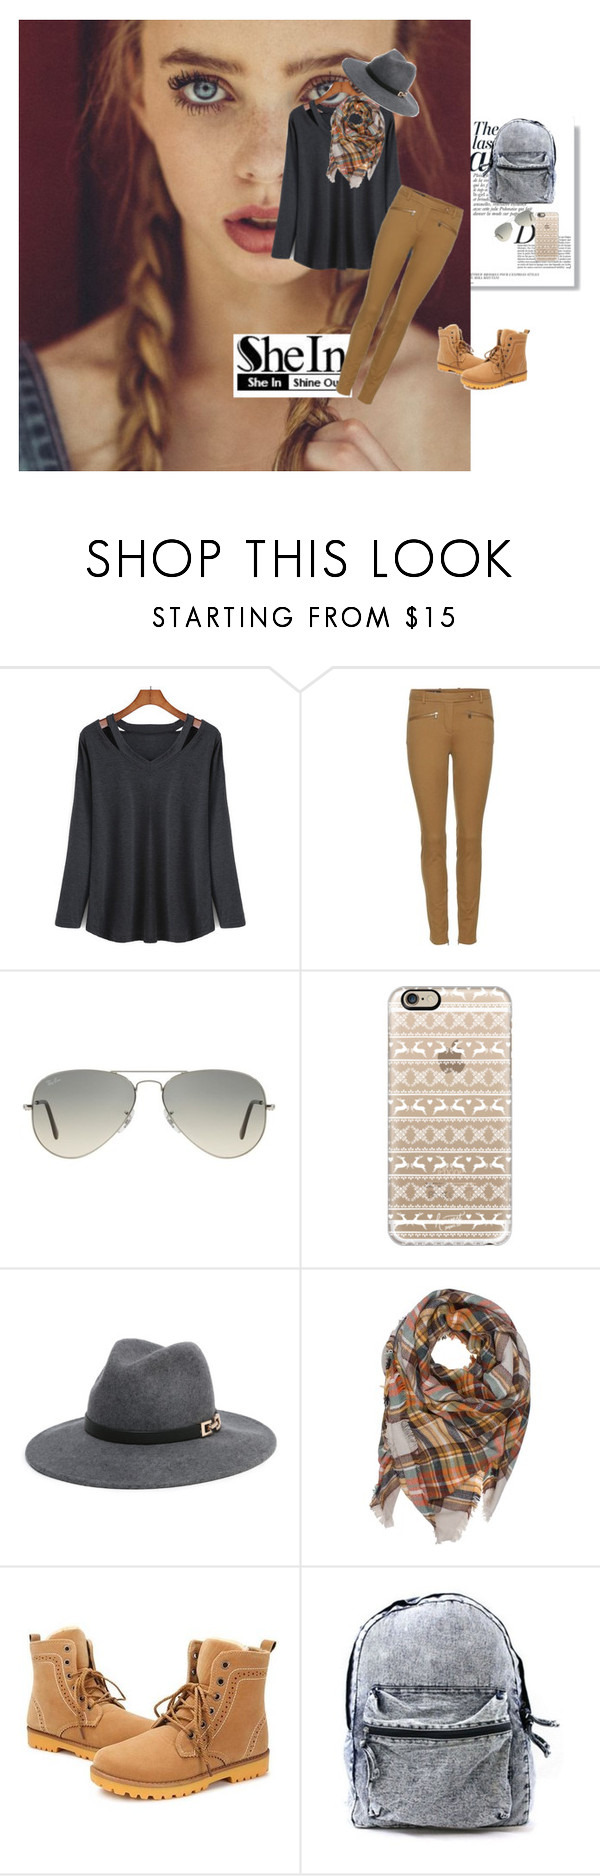 """""""Hollow Black T-Shirt"""" by azra-2709 ❤ liked on Polyvore featuring Anja, Loro Piana, Ray-Ban, Casetify and Bebe"""